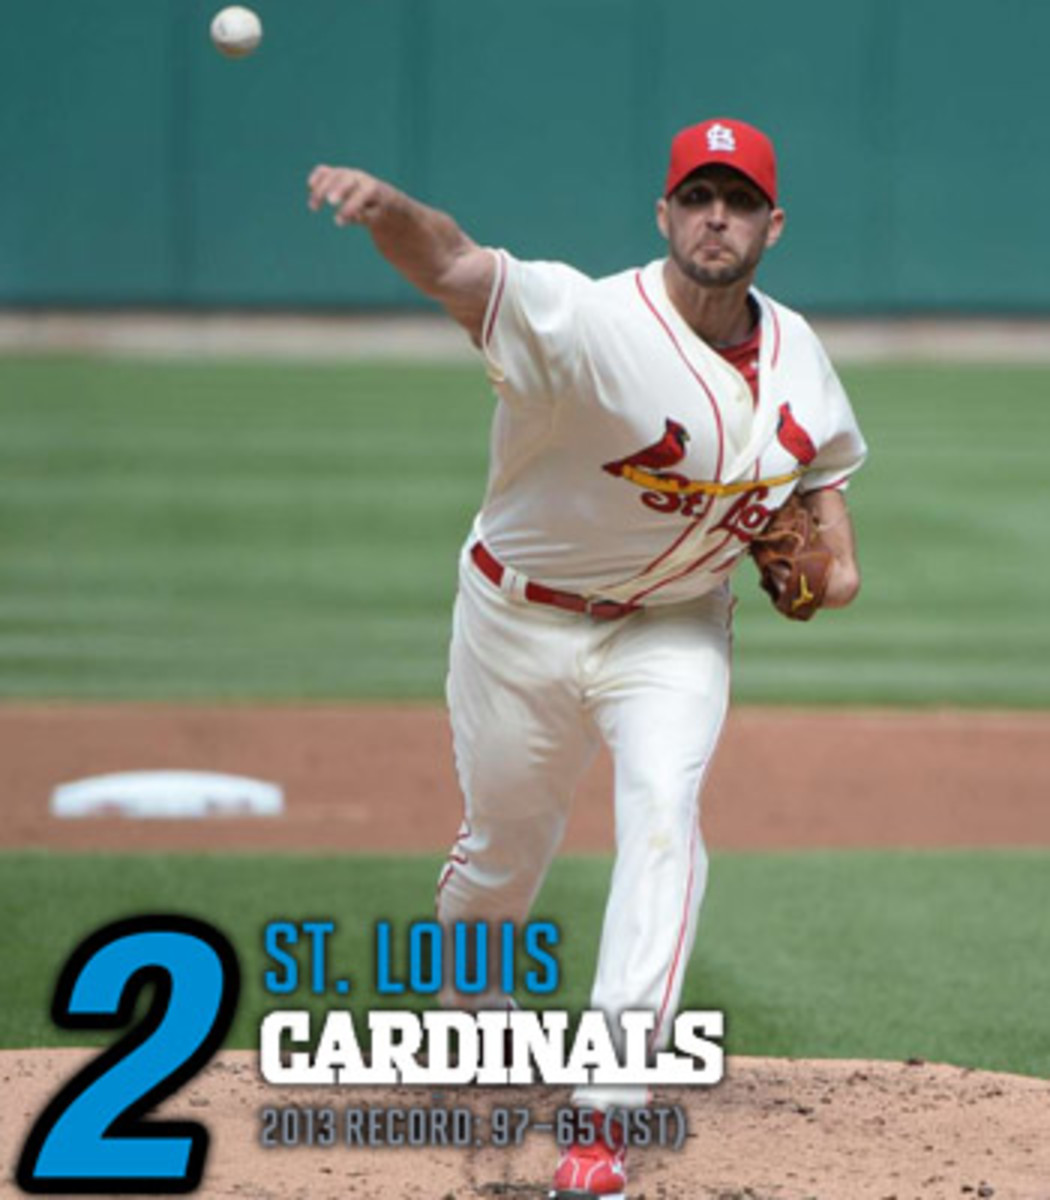 2014 mlb preview NL central st. louis cardinals